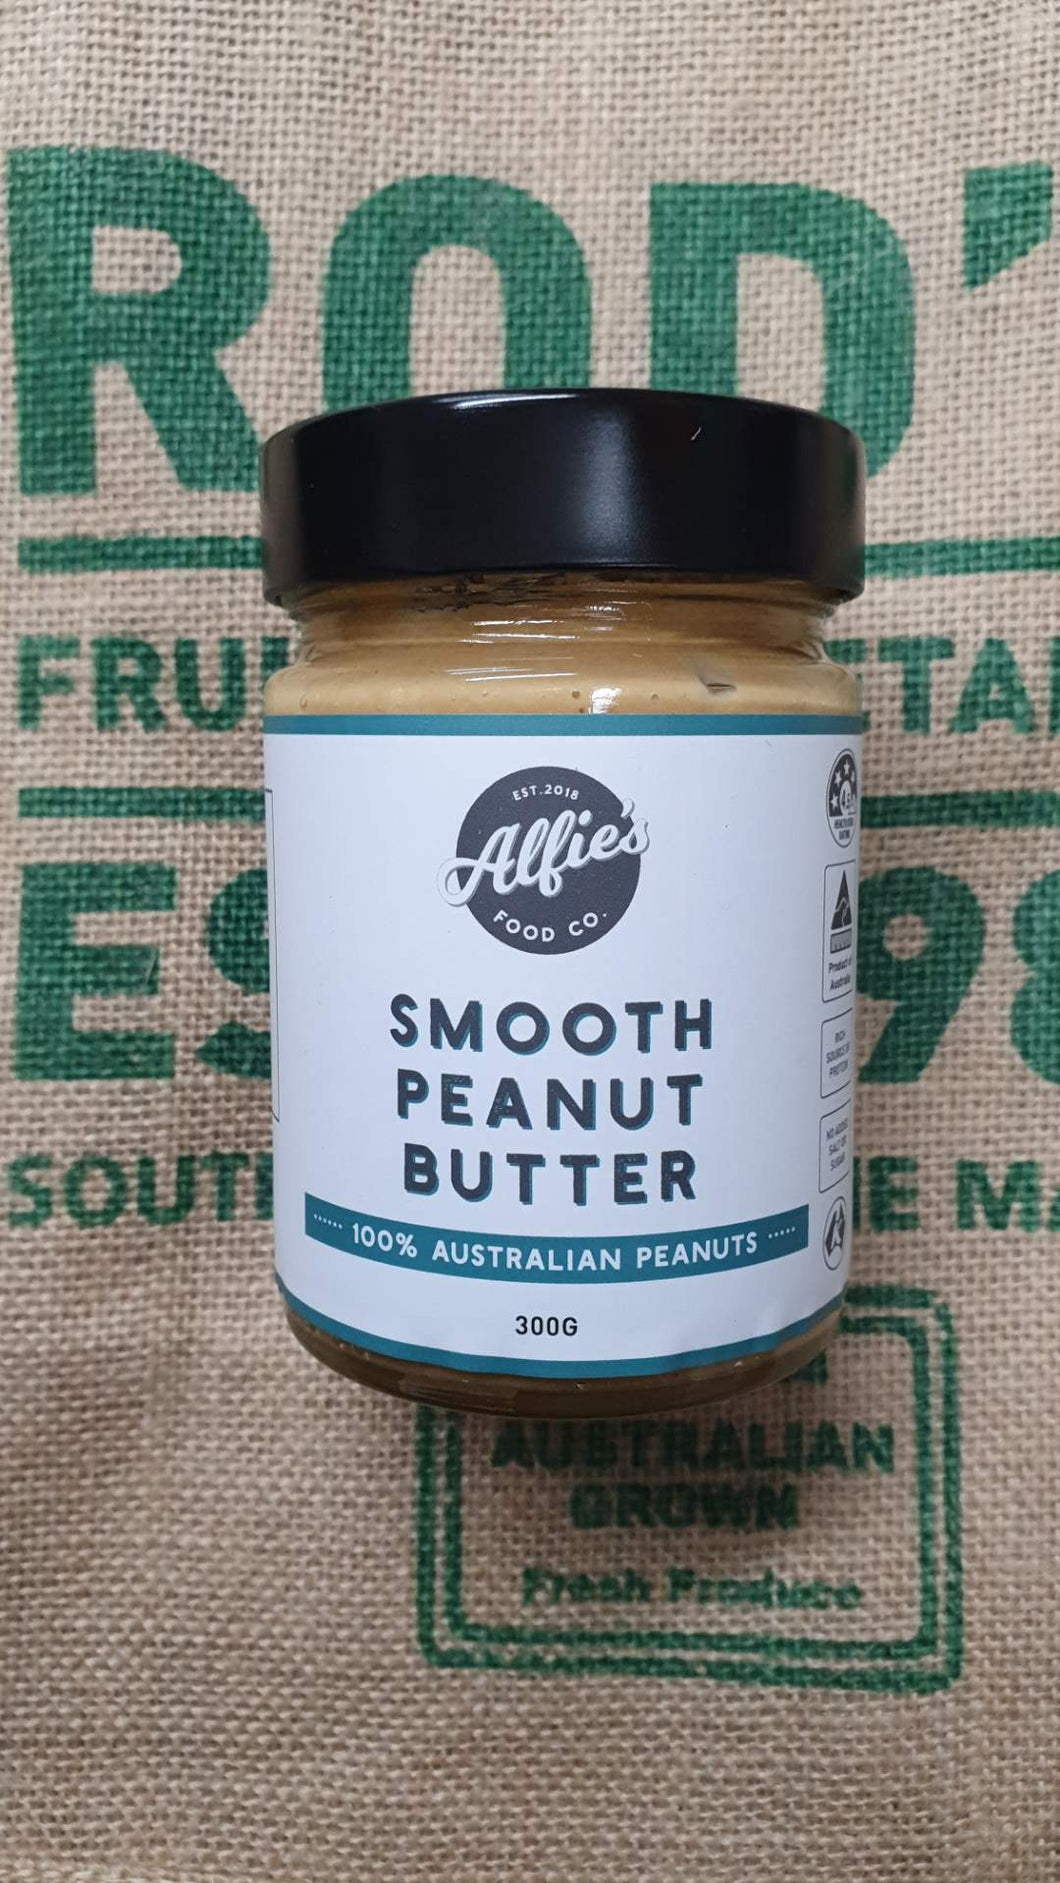 Smooth Peanut  Butter ALFIES 300g